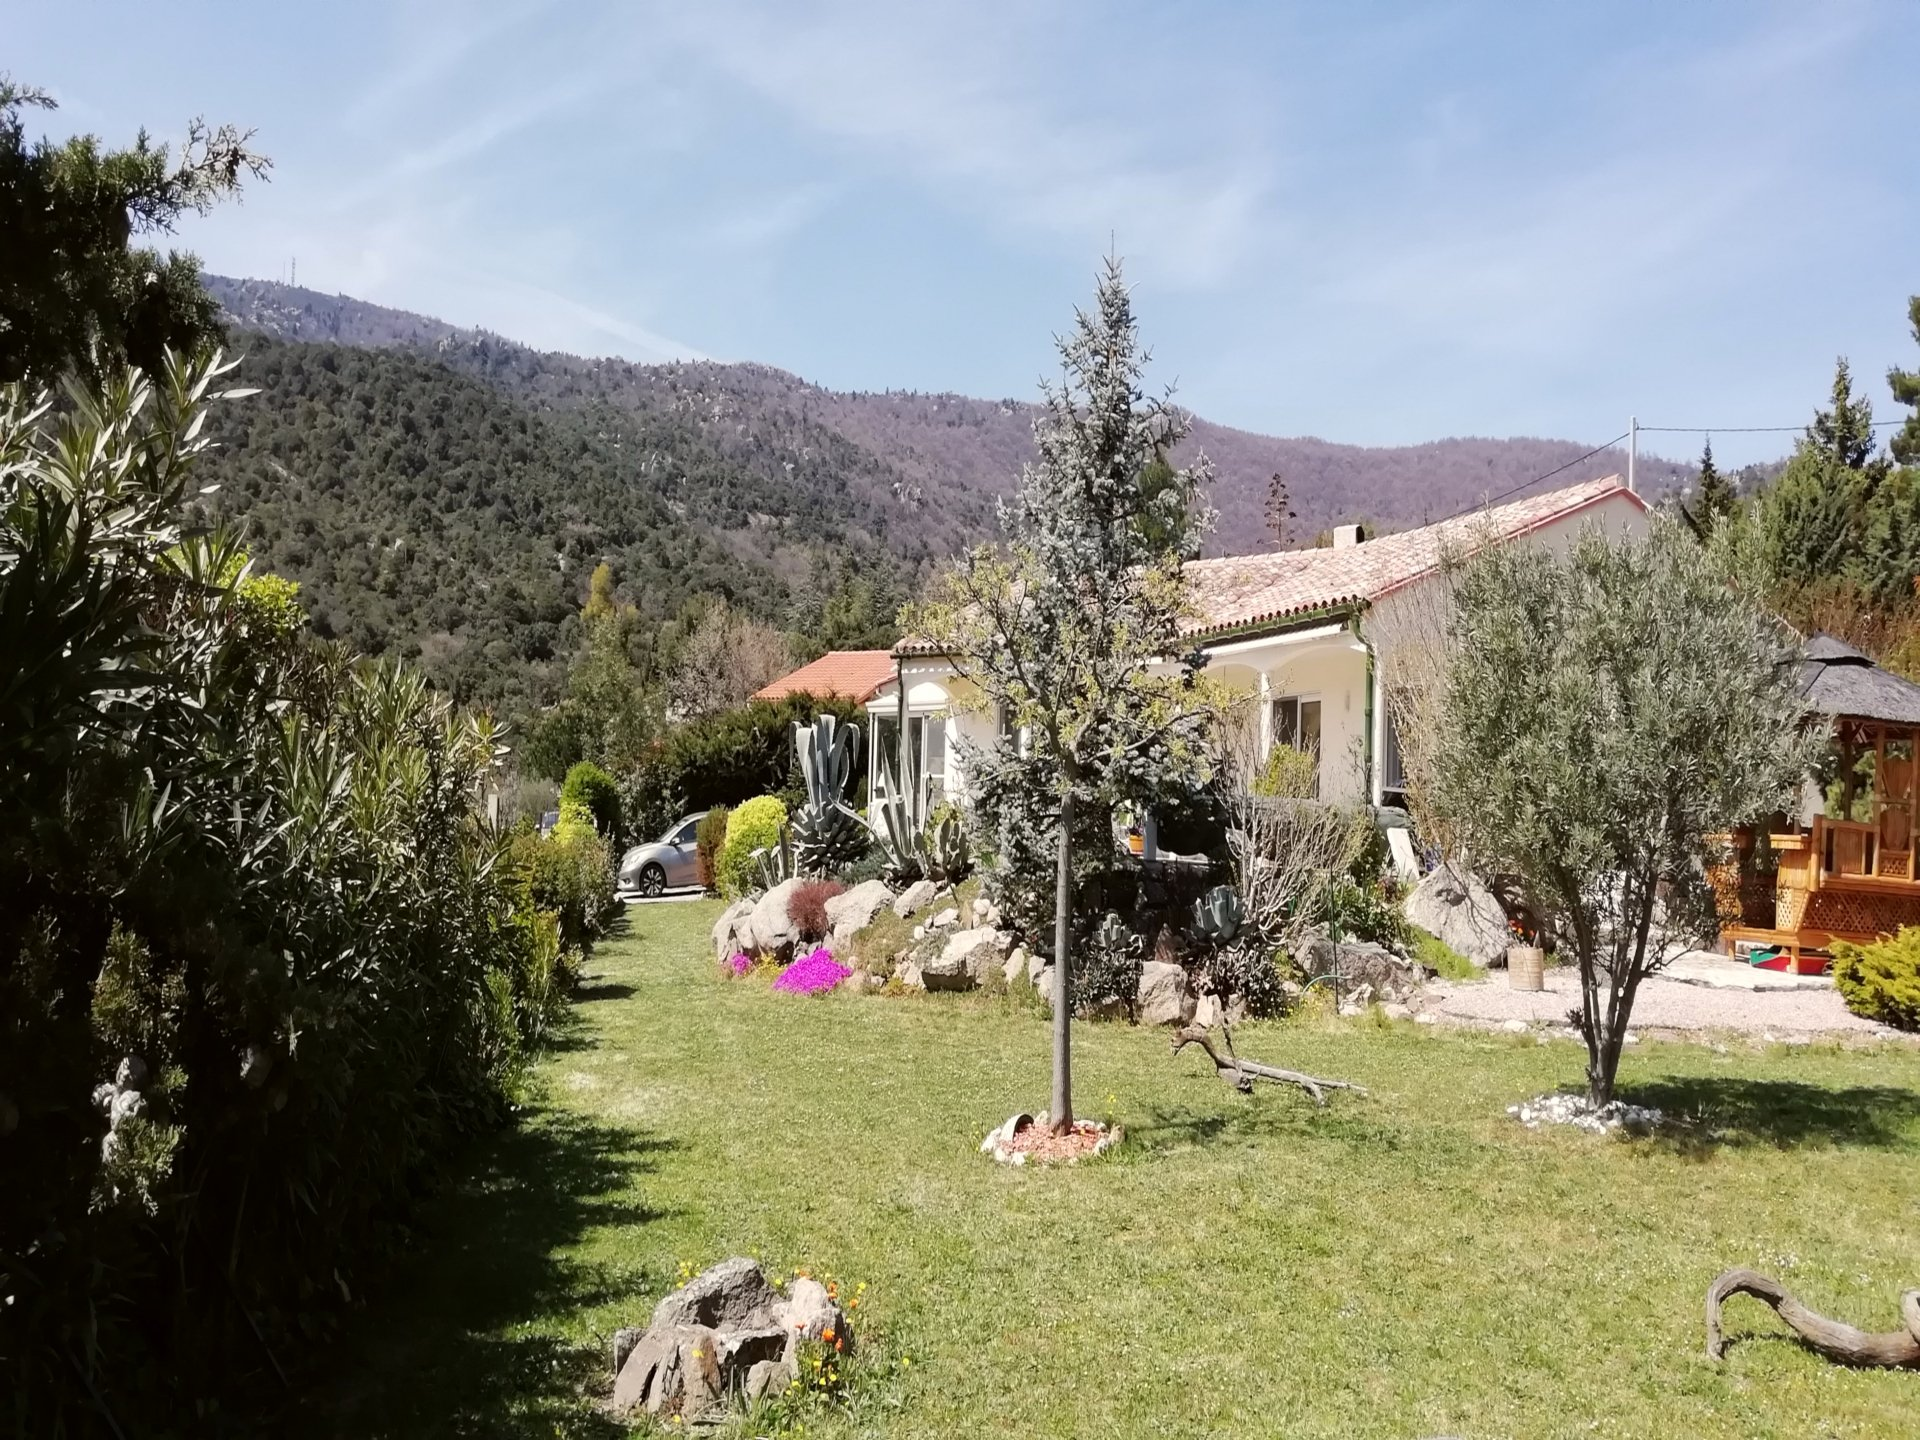 BEAUTIFUL BUNGALOW TYPE VILLA WITH SMASHING VIEWS AND POOL, ARBOUSSOLS